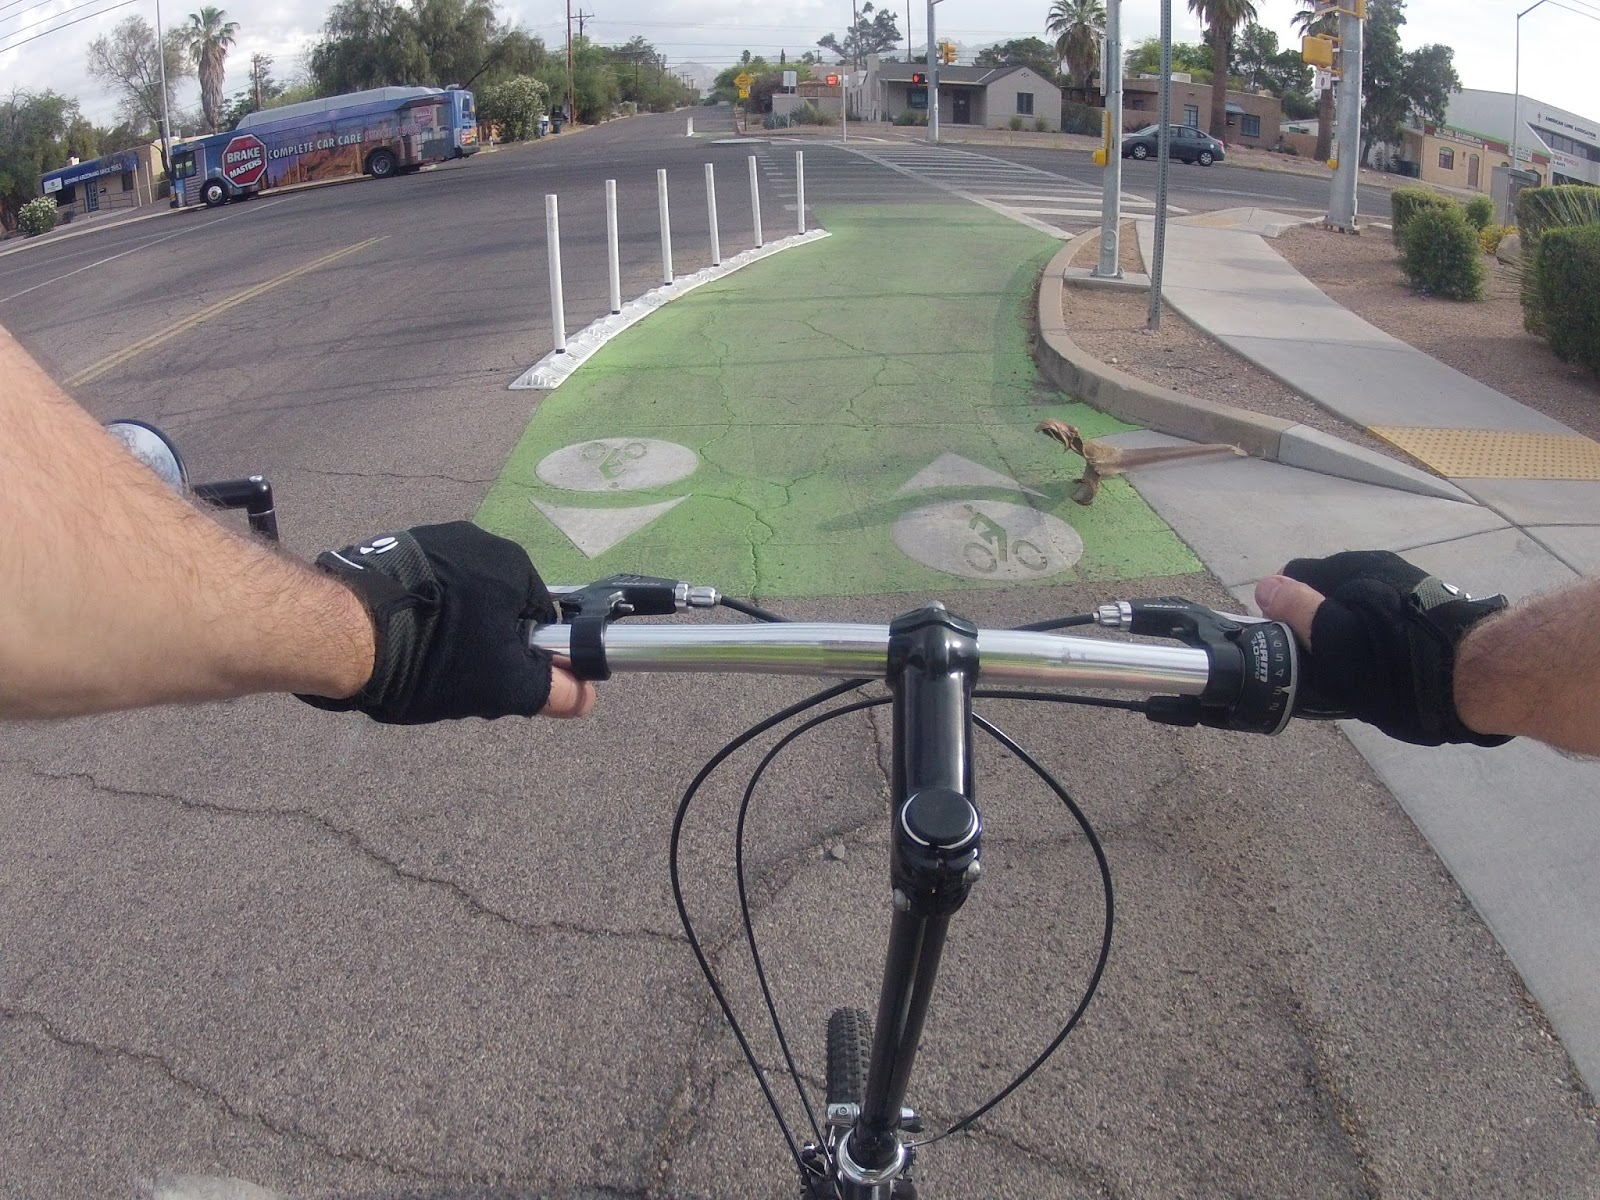 one some routes cyclists are channeled to use the cross walk to cross major roads